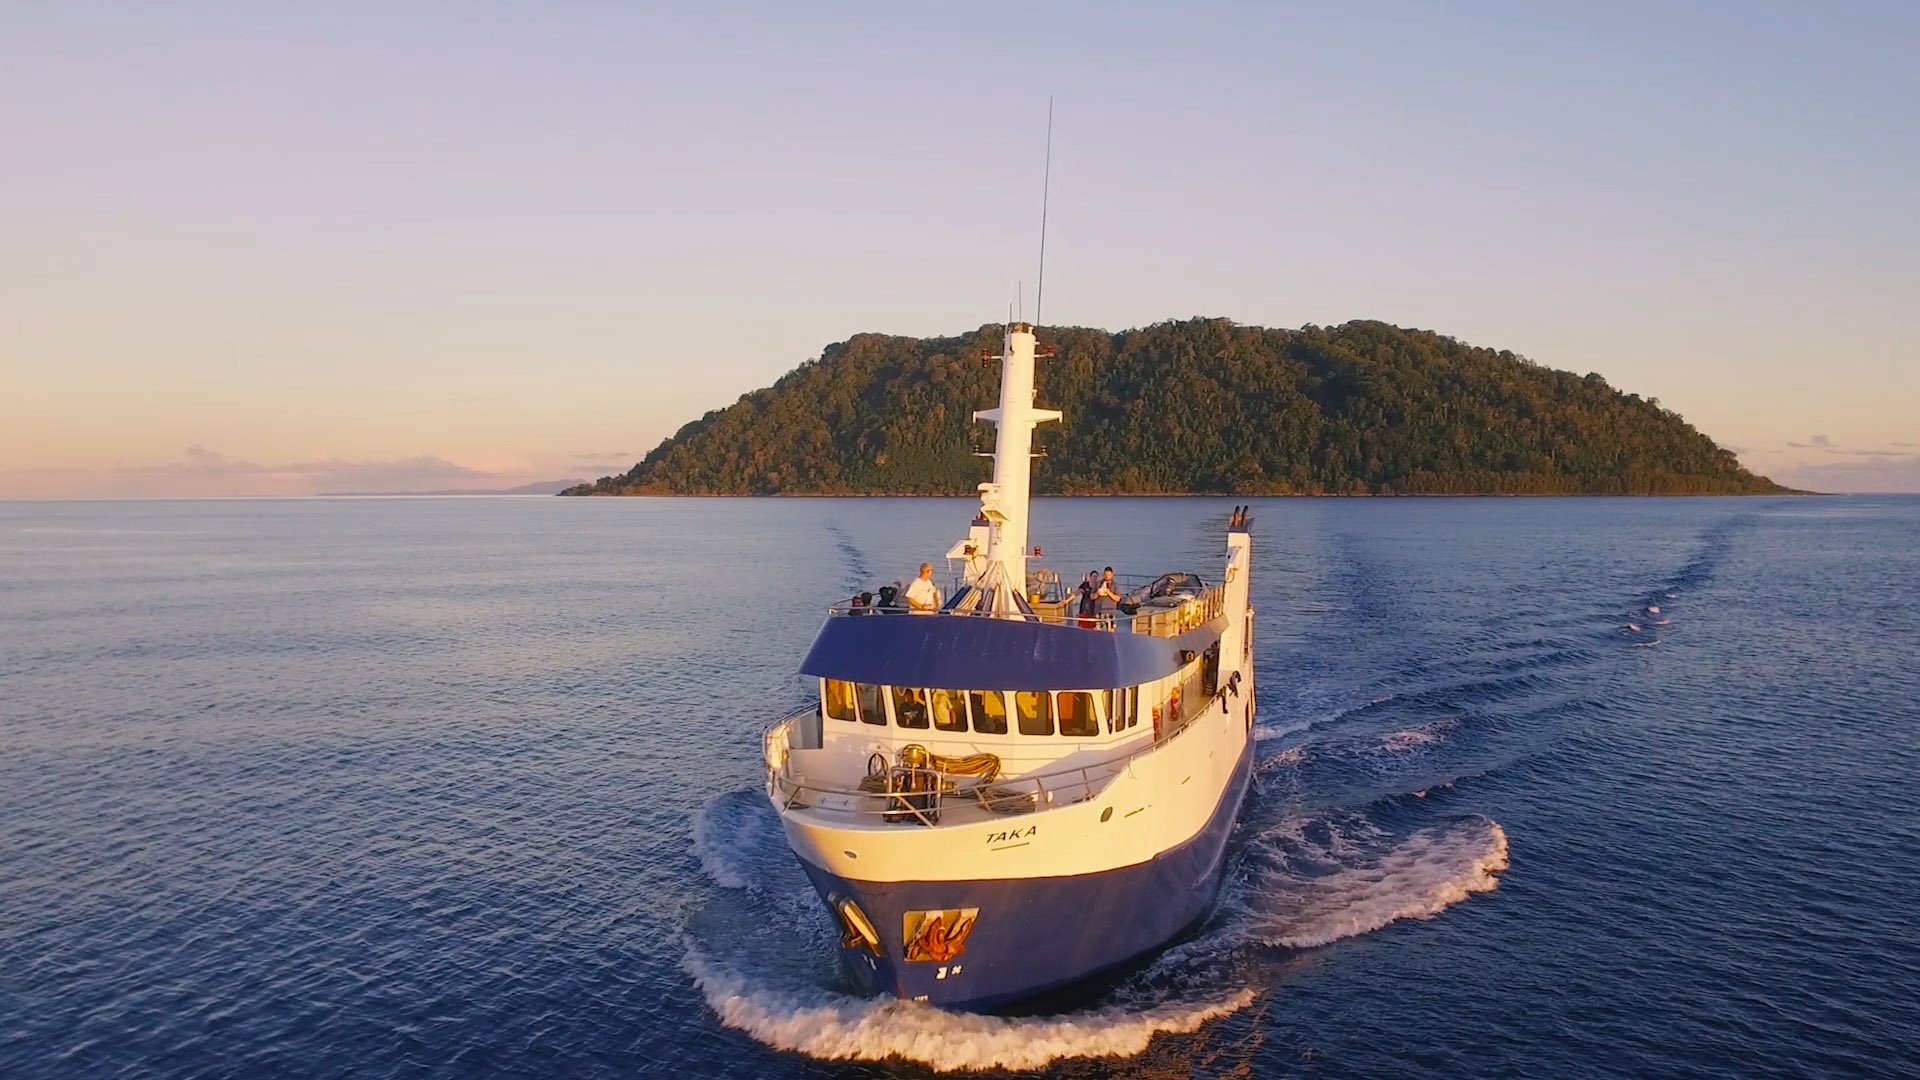 Solomon Islands Liveaboard October 10th - 17th 2020